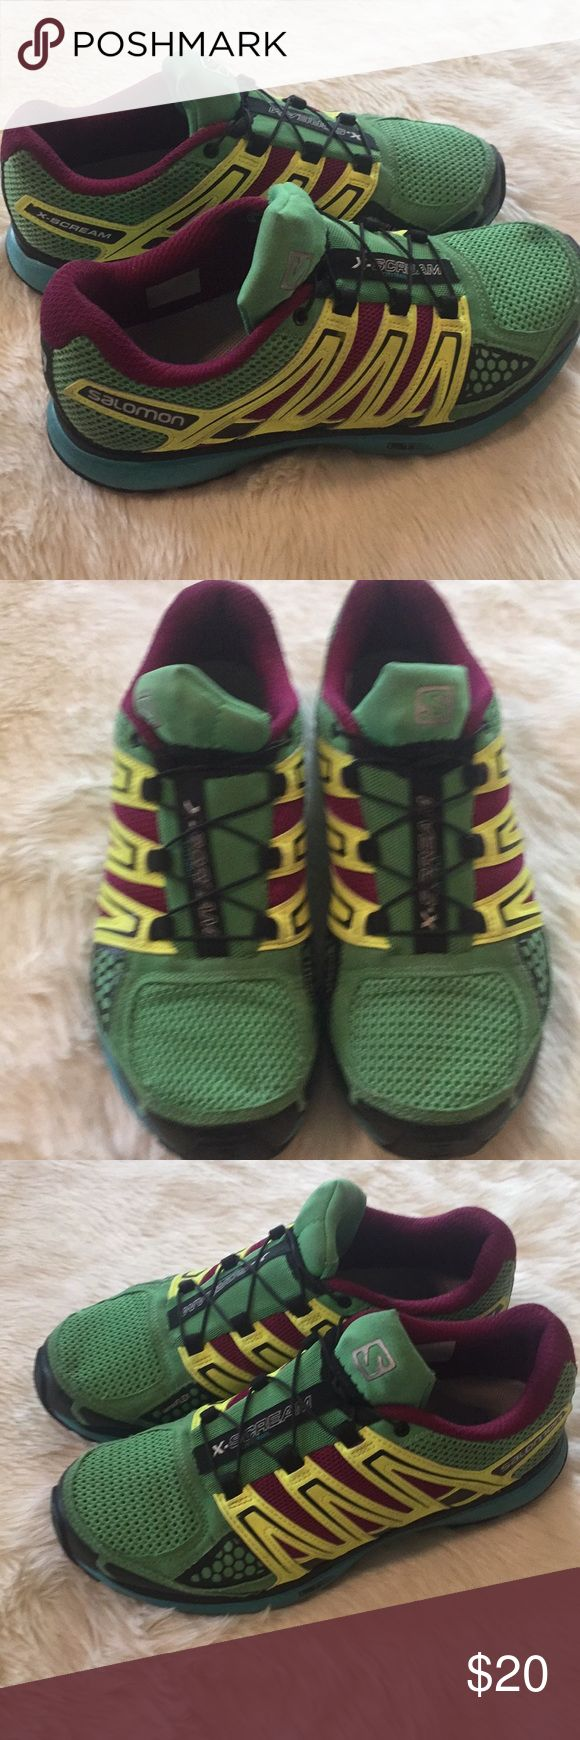 Women's Salomon X-Scream Trail Running Shoes Very used trail running shoes but still look great! Make me and offer! No rips or stains. Salomon Shoes Athletic Shoes